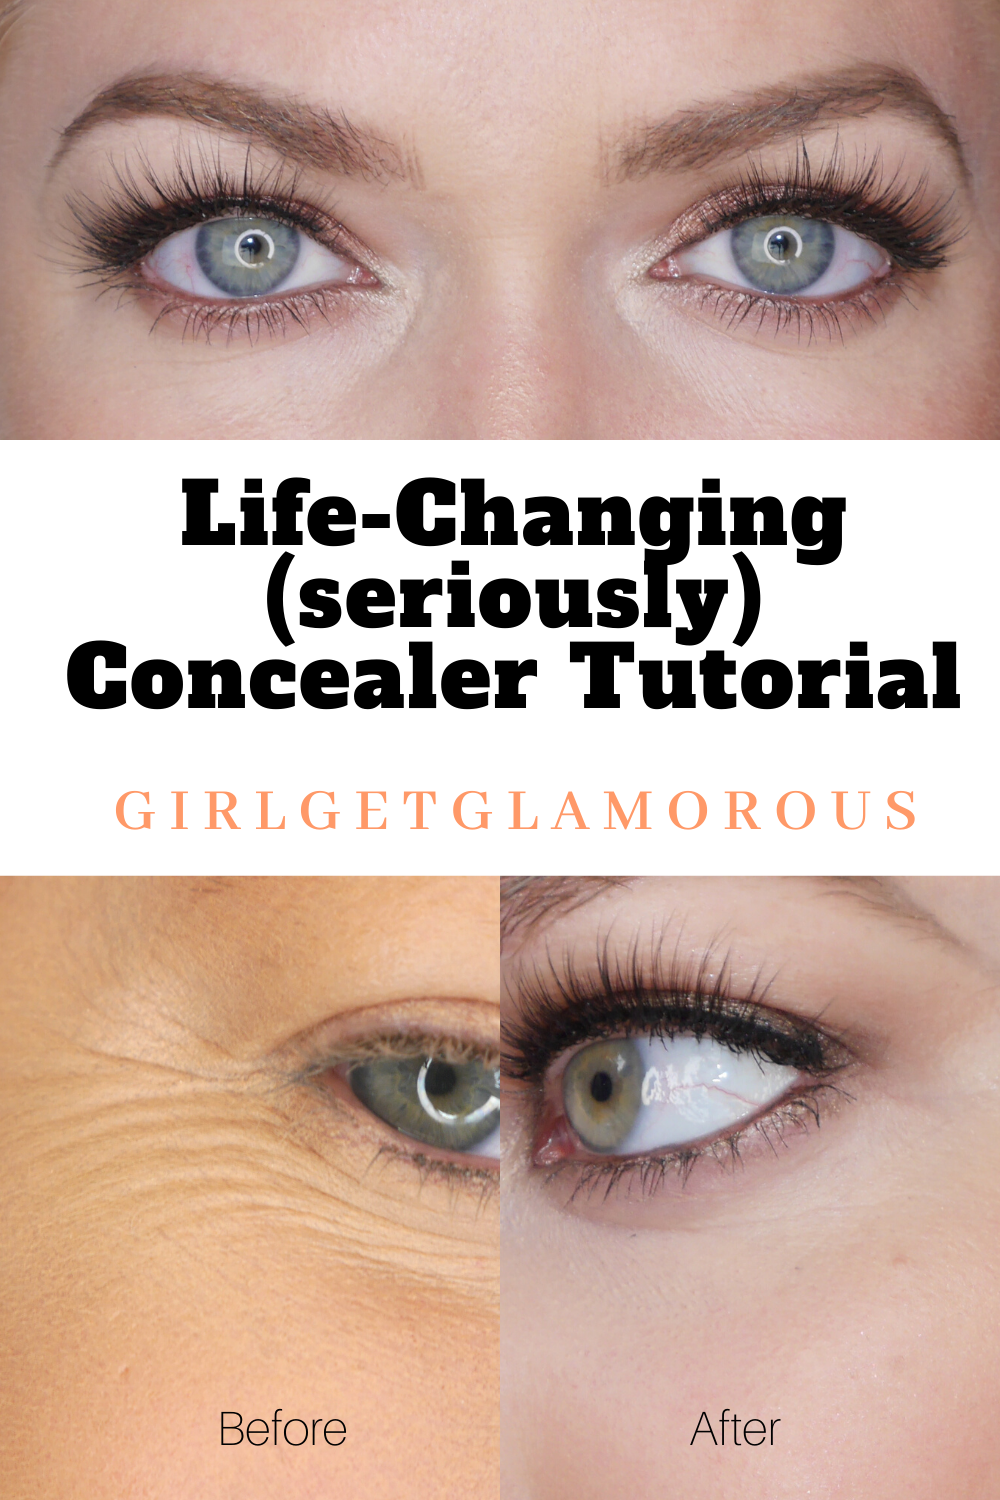 best concealer tutorial I've ever watched, life changing for dry and mature skin and dark circles | #concealer #beforeandafter #howto #makeuptips #mua #bridalmakeup #makeupadvice #makeuphacks #concealertutorial #tutorial #beauty